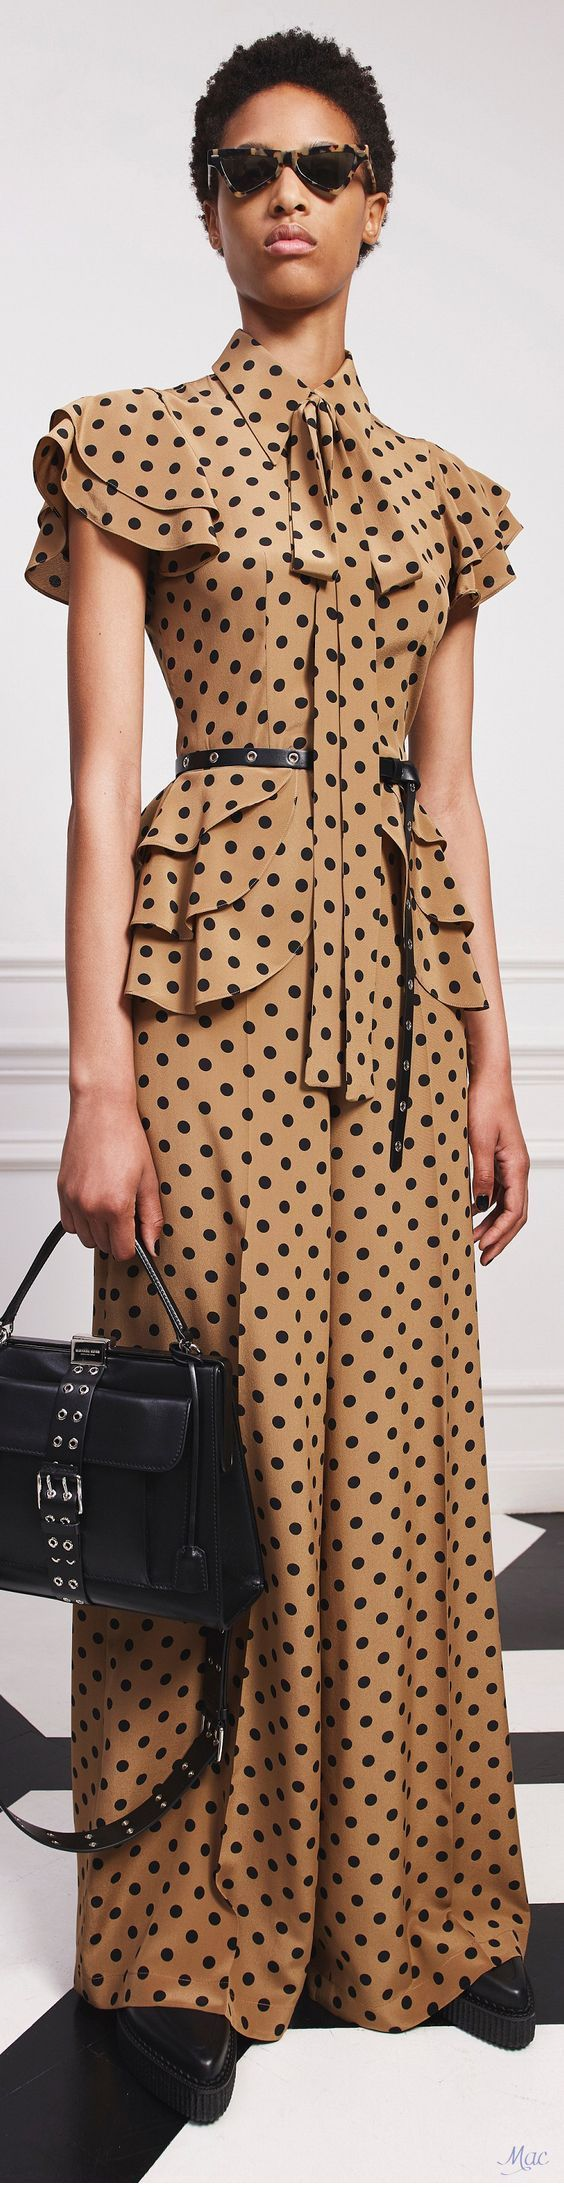 Long polka dot dress with black accessories